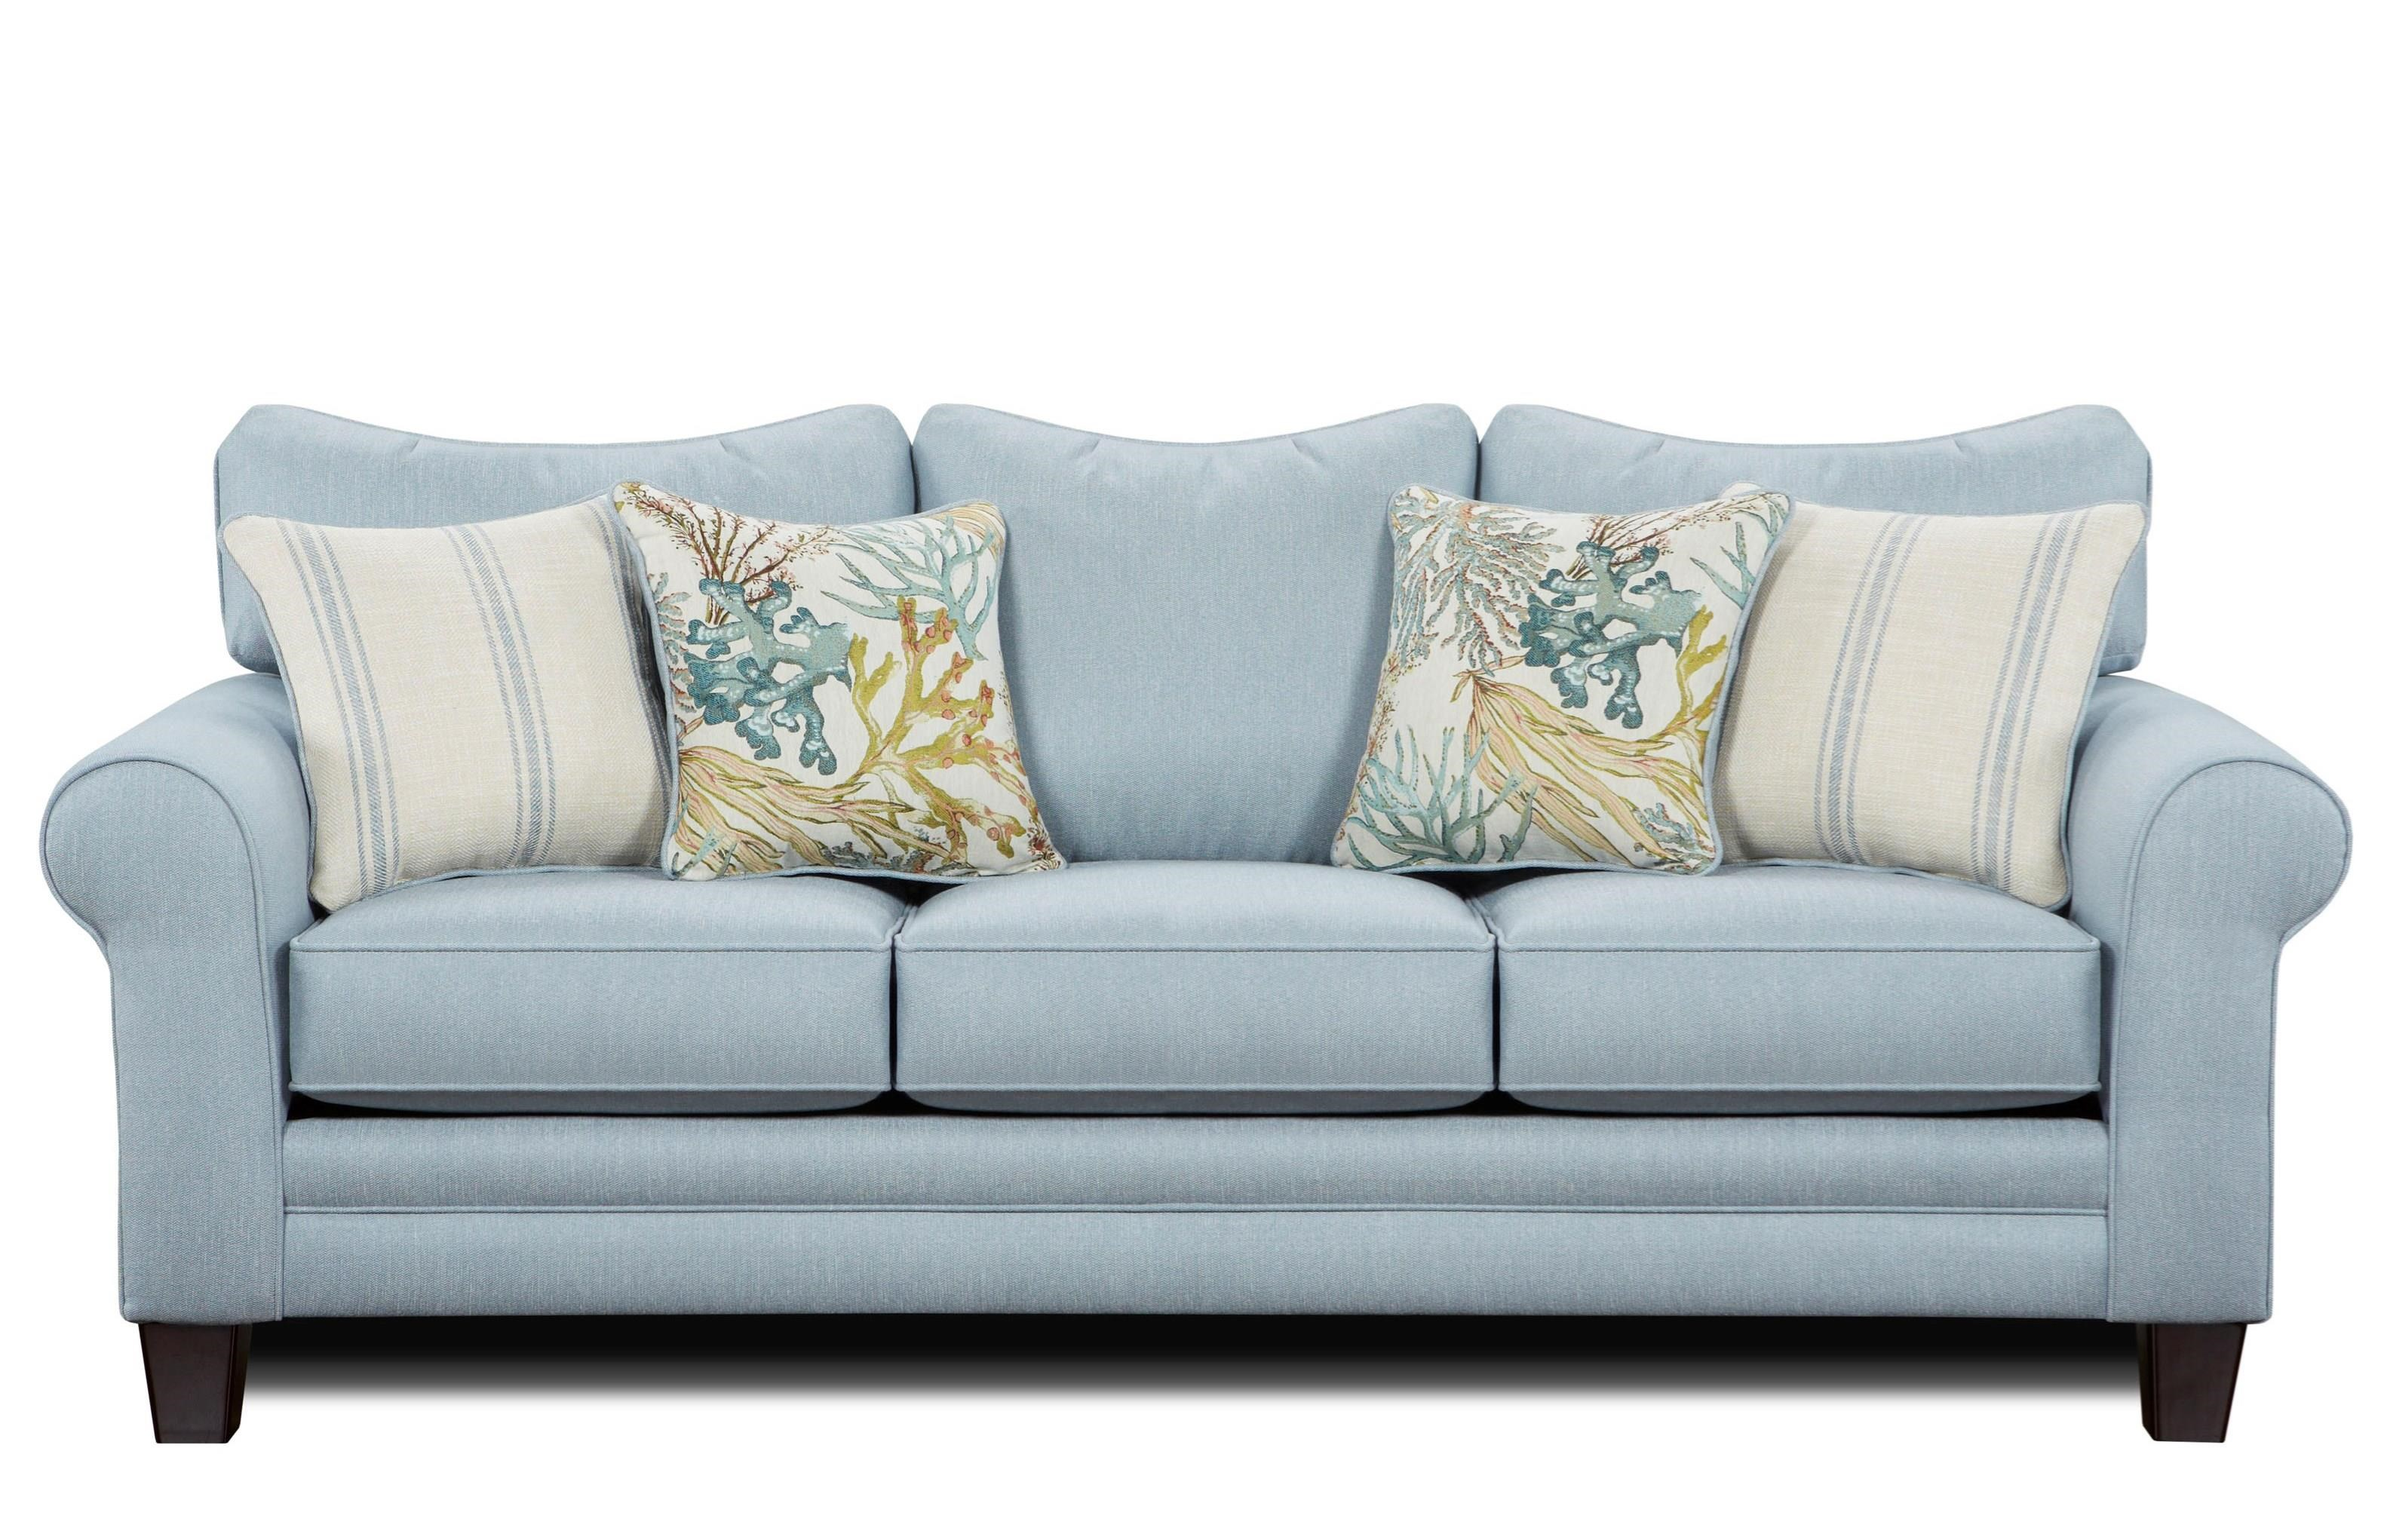 1140 Sofa by Fusion Furniture at Furniture Superstore - Rochester, MN